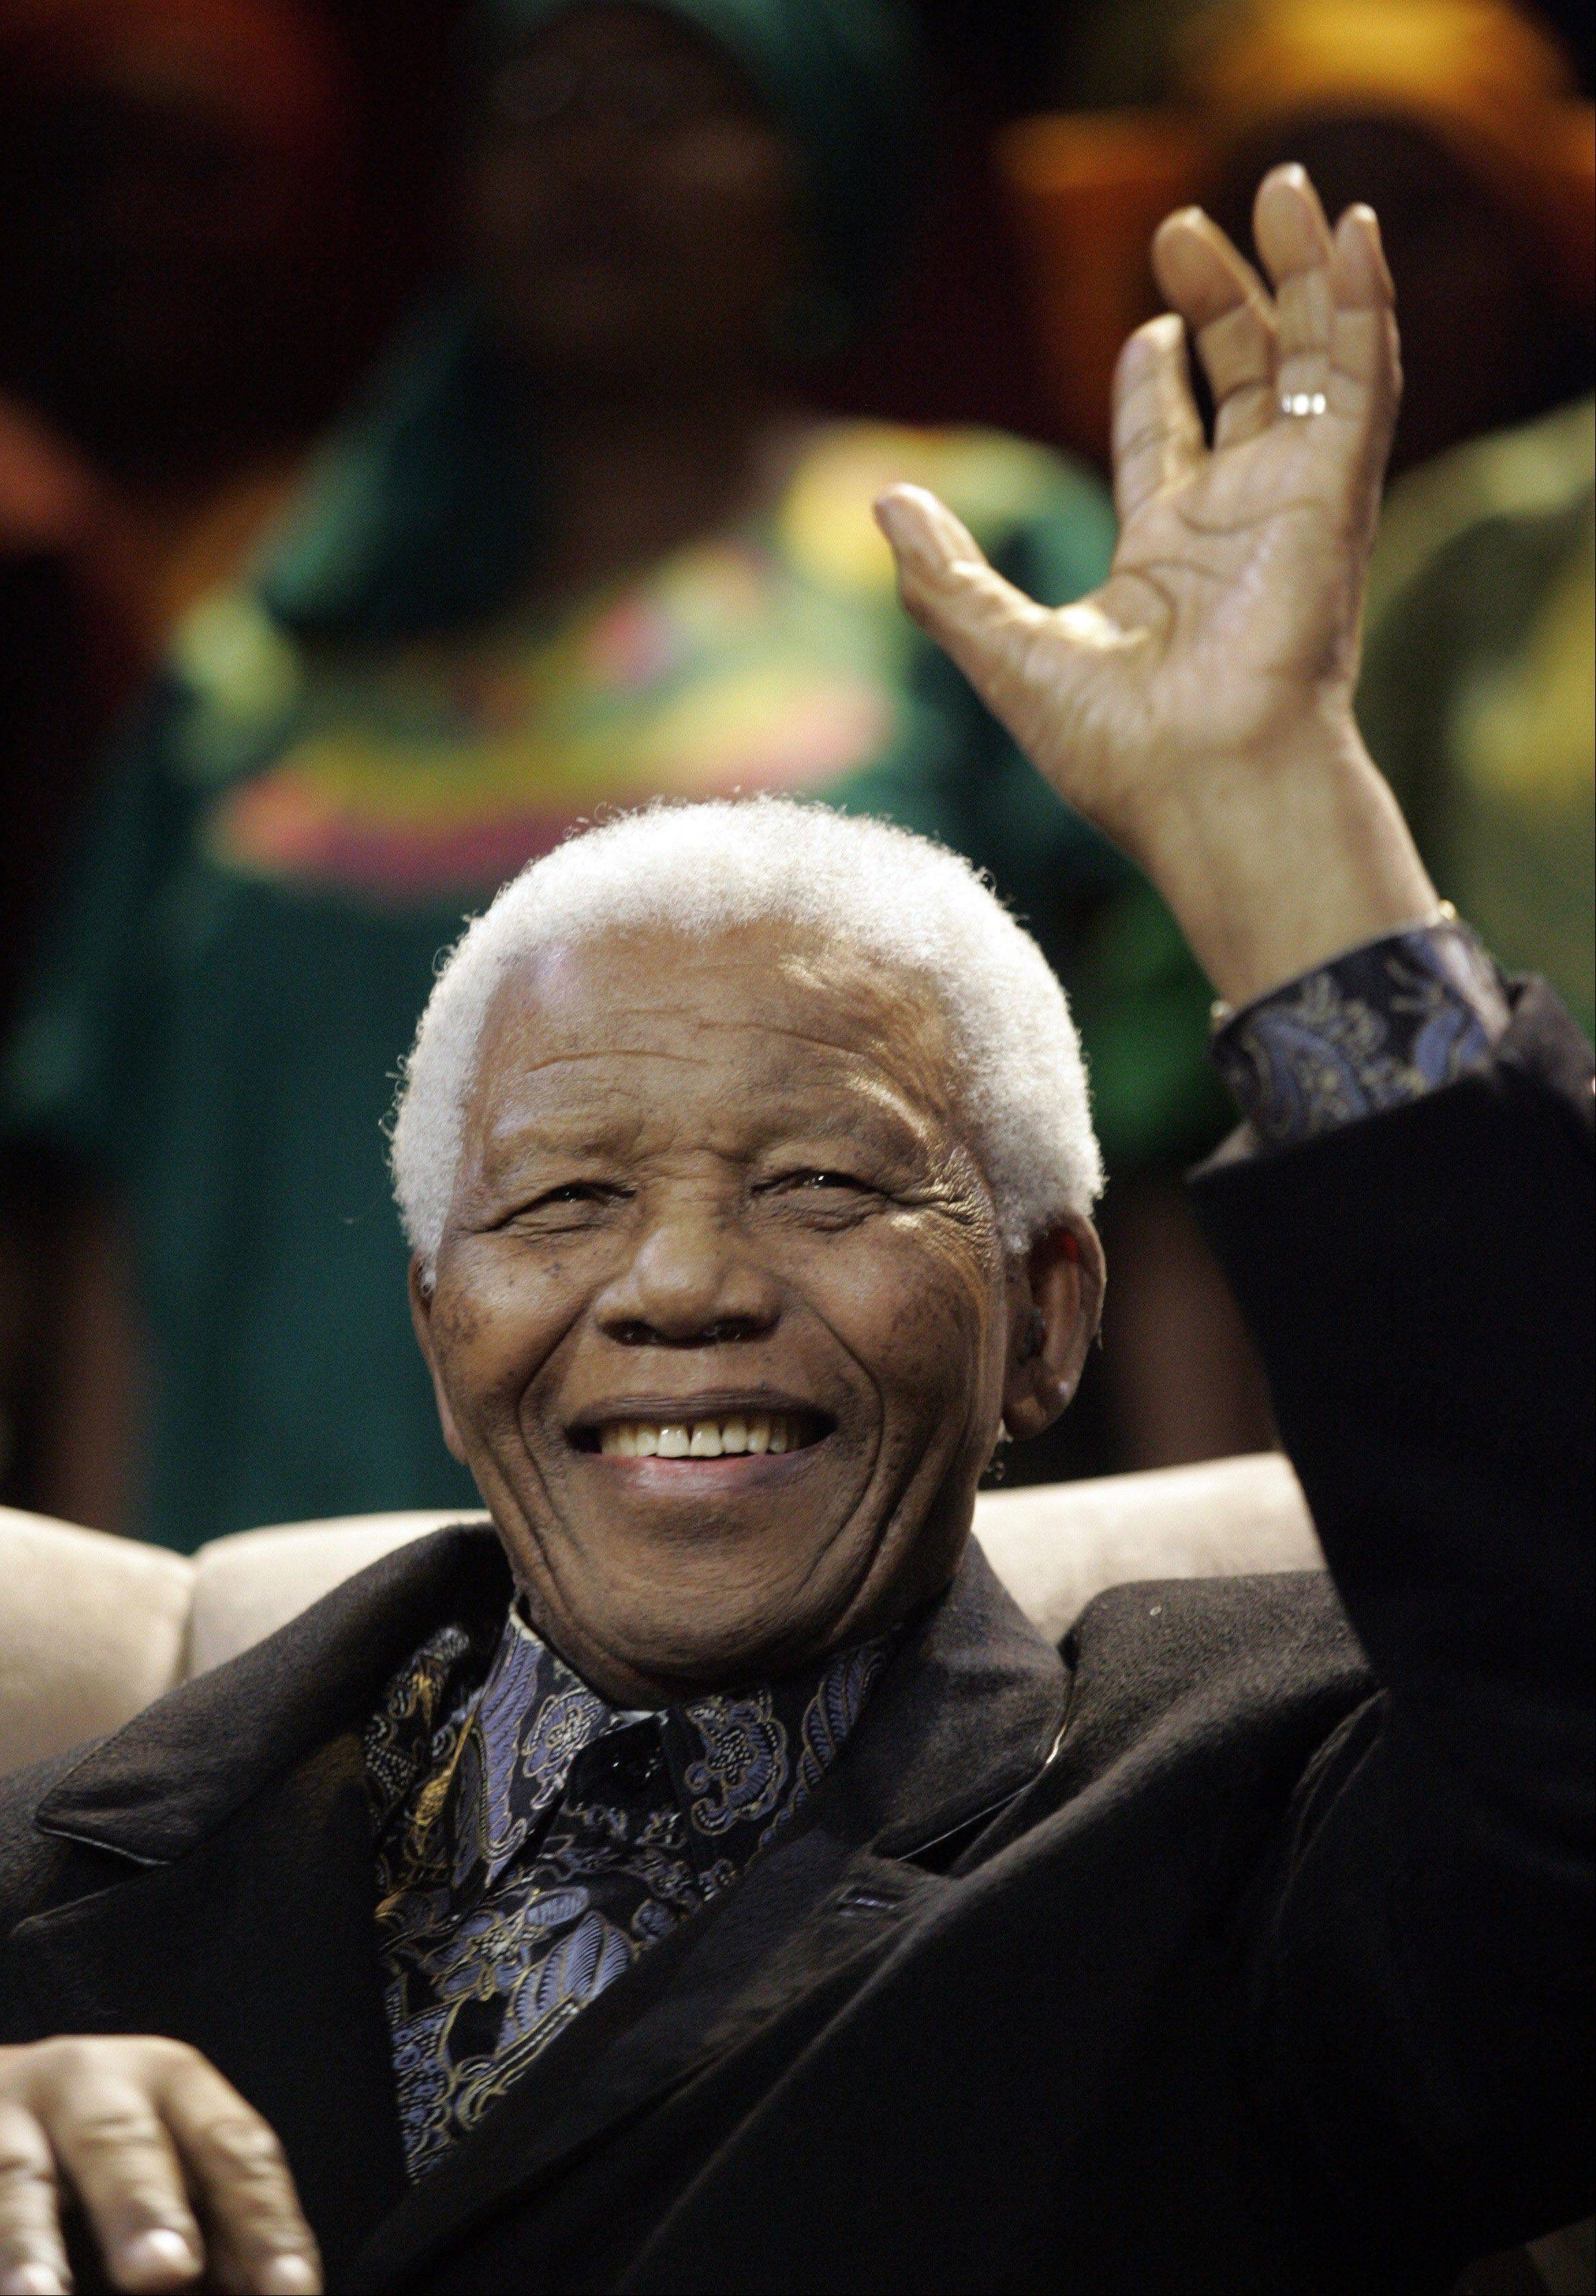 Former South Africa's President Nelson Mandela waves, after his arrival for the 6th Annual Mandela Lecture in Soweto, South Africa, Saturday, July 12, 2008.